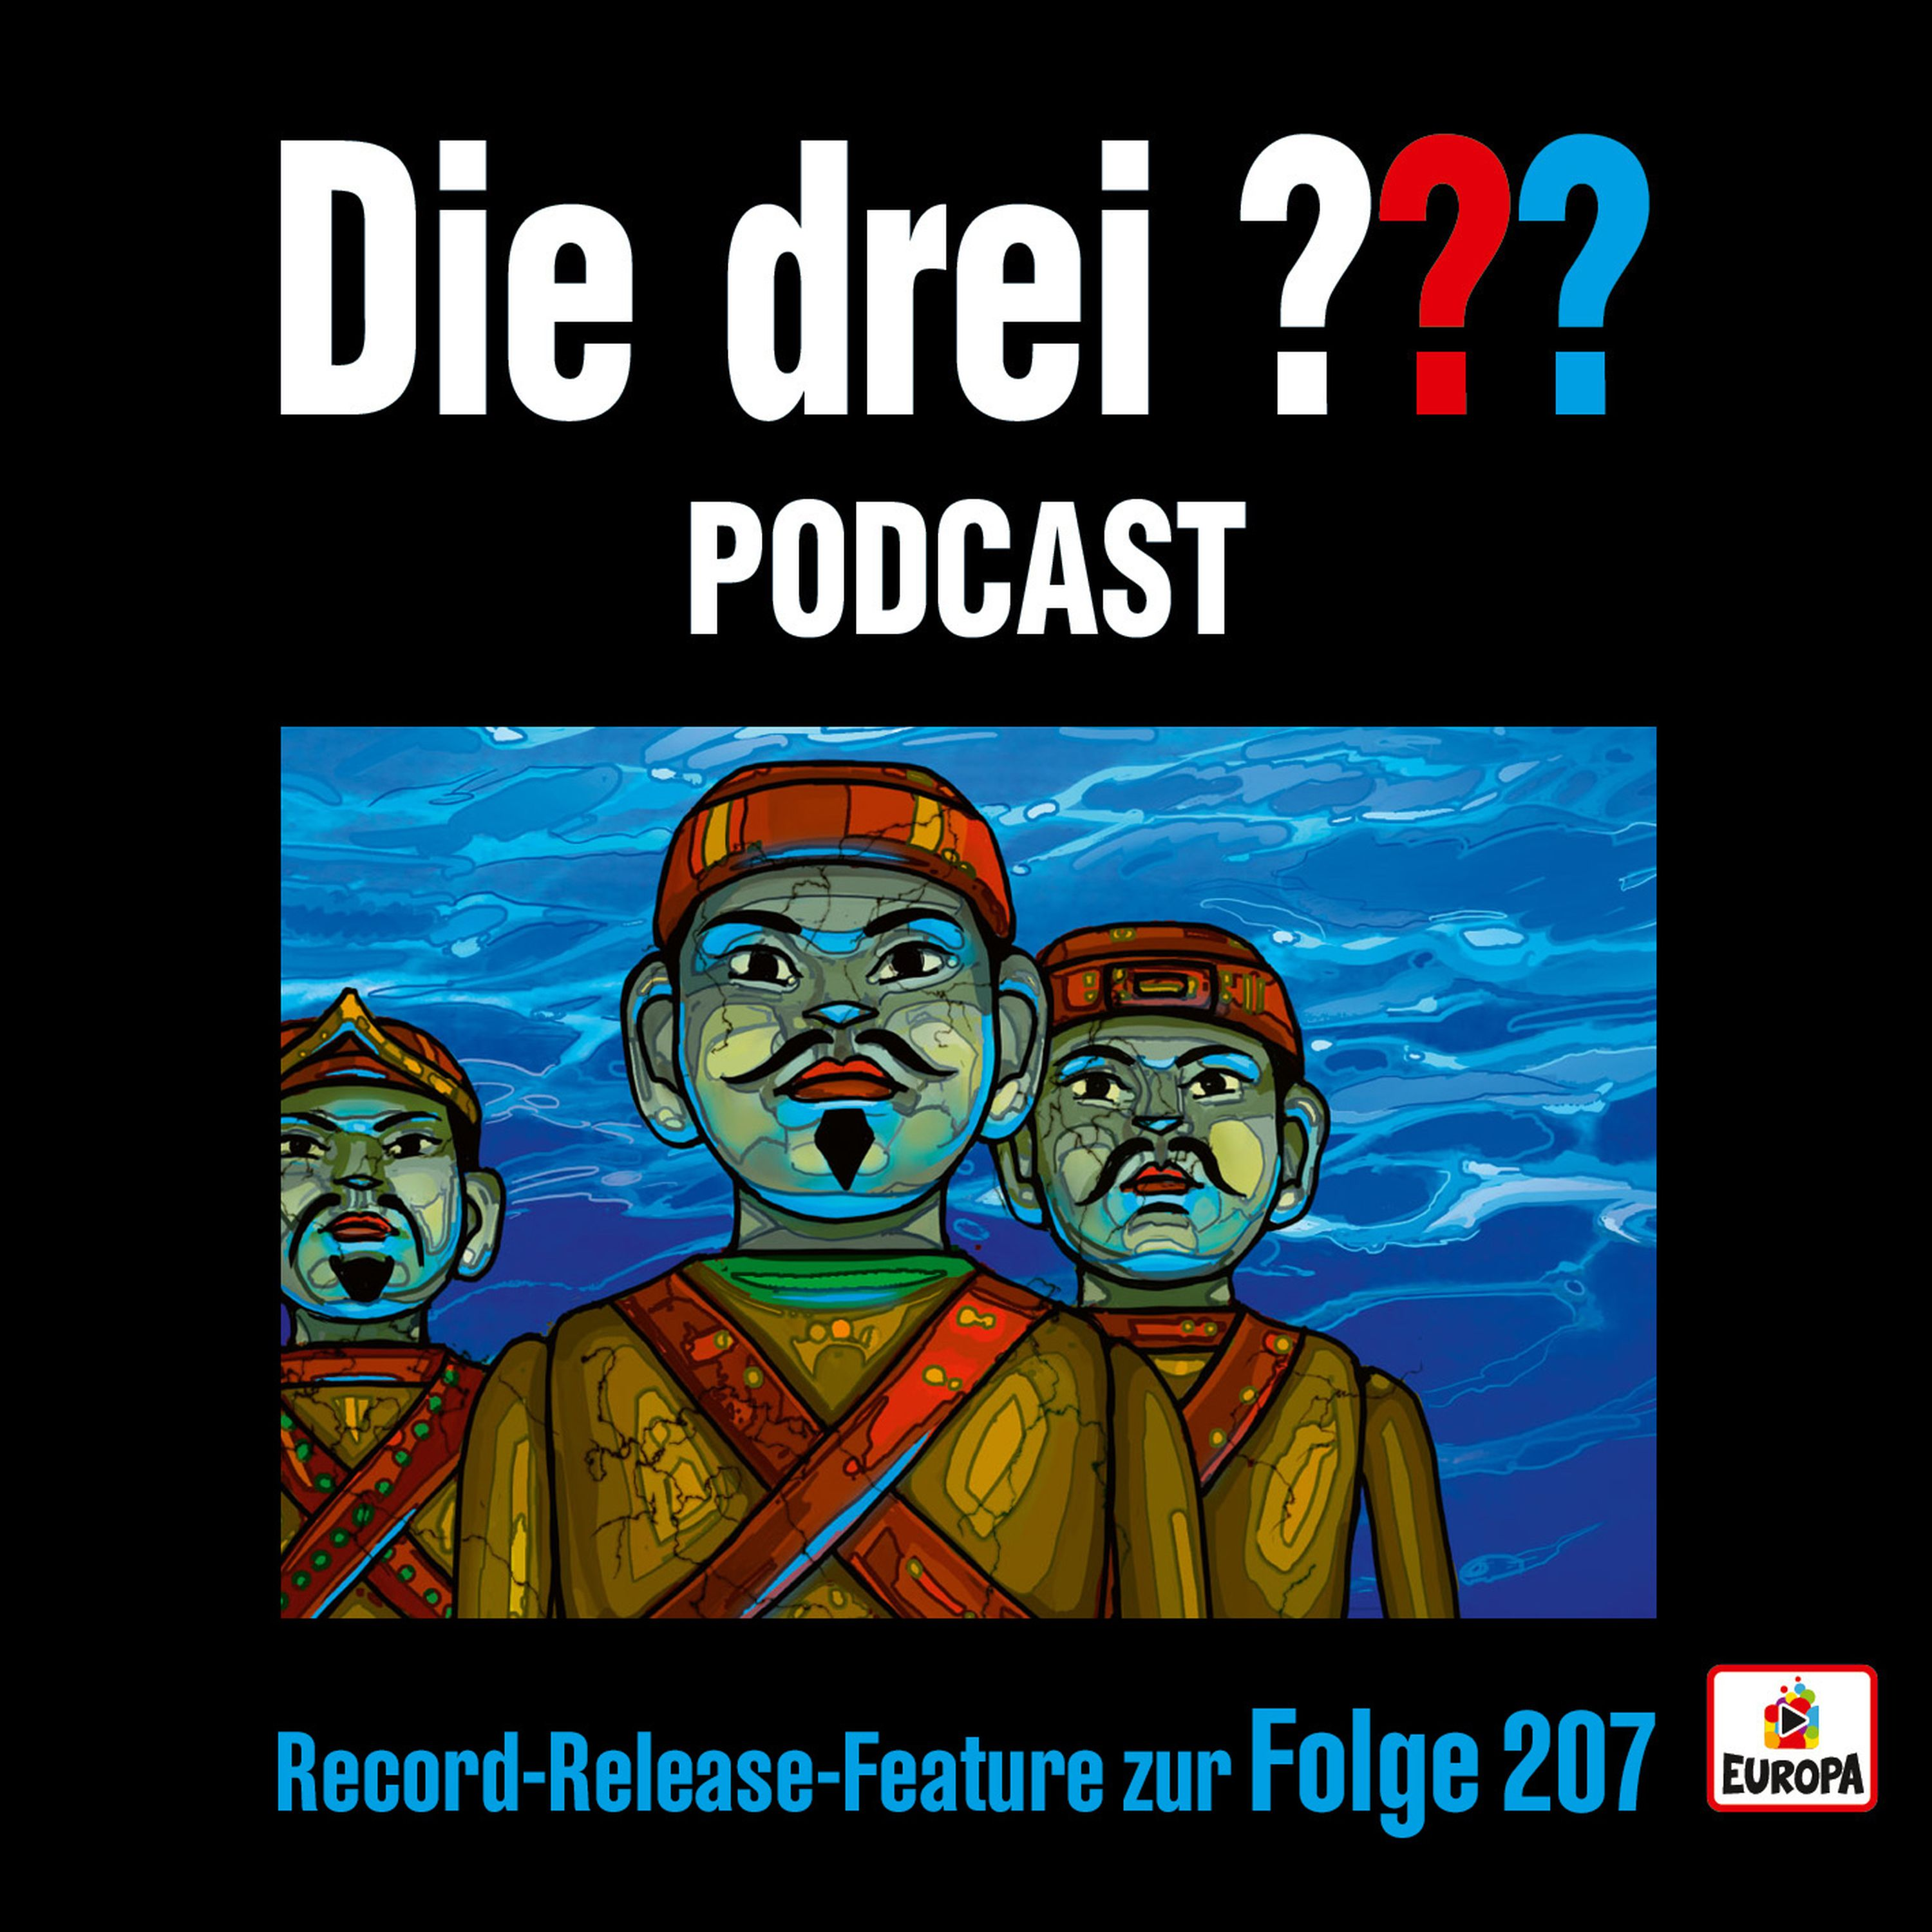 Record-Release-Feature zur Folge 207